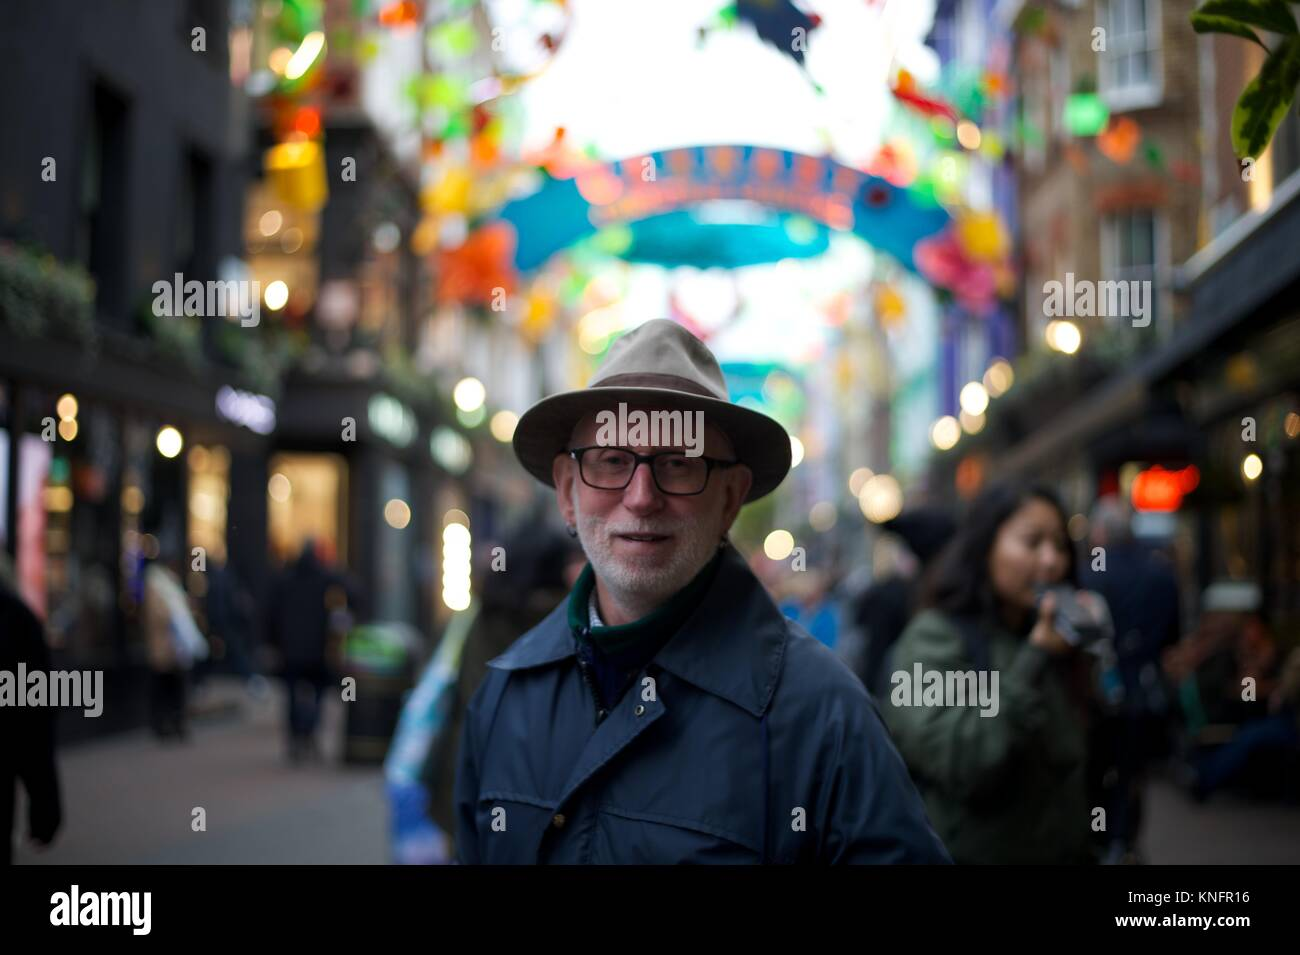 Carnaby Street, London - Stock Image